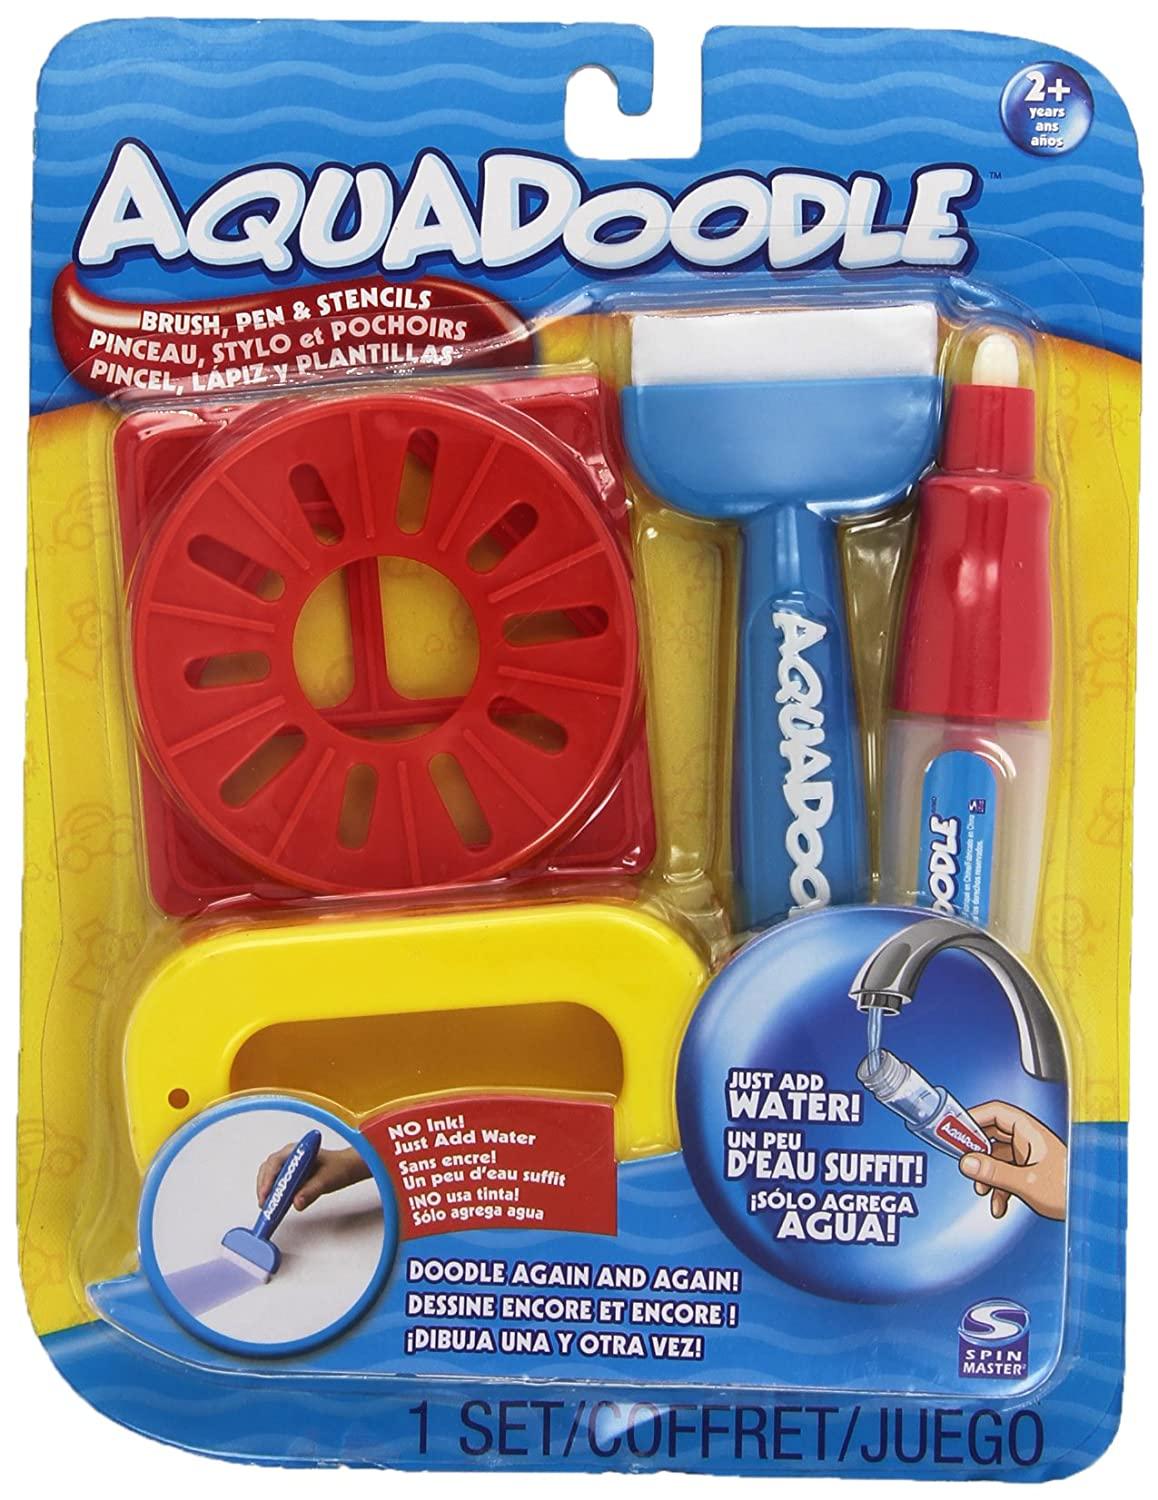 Aquadoodle Brush, pen, and stencils with bonus spill-proof cup 20032404